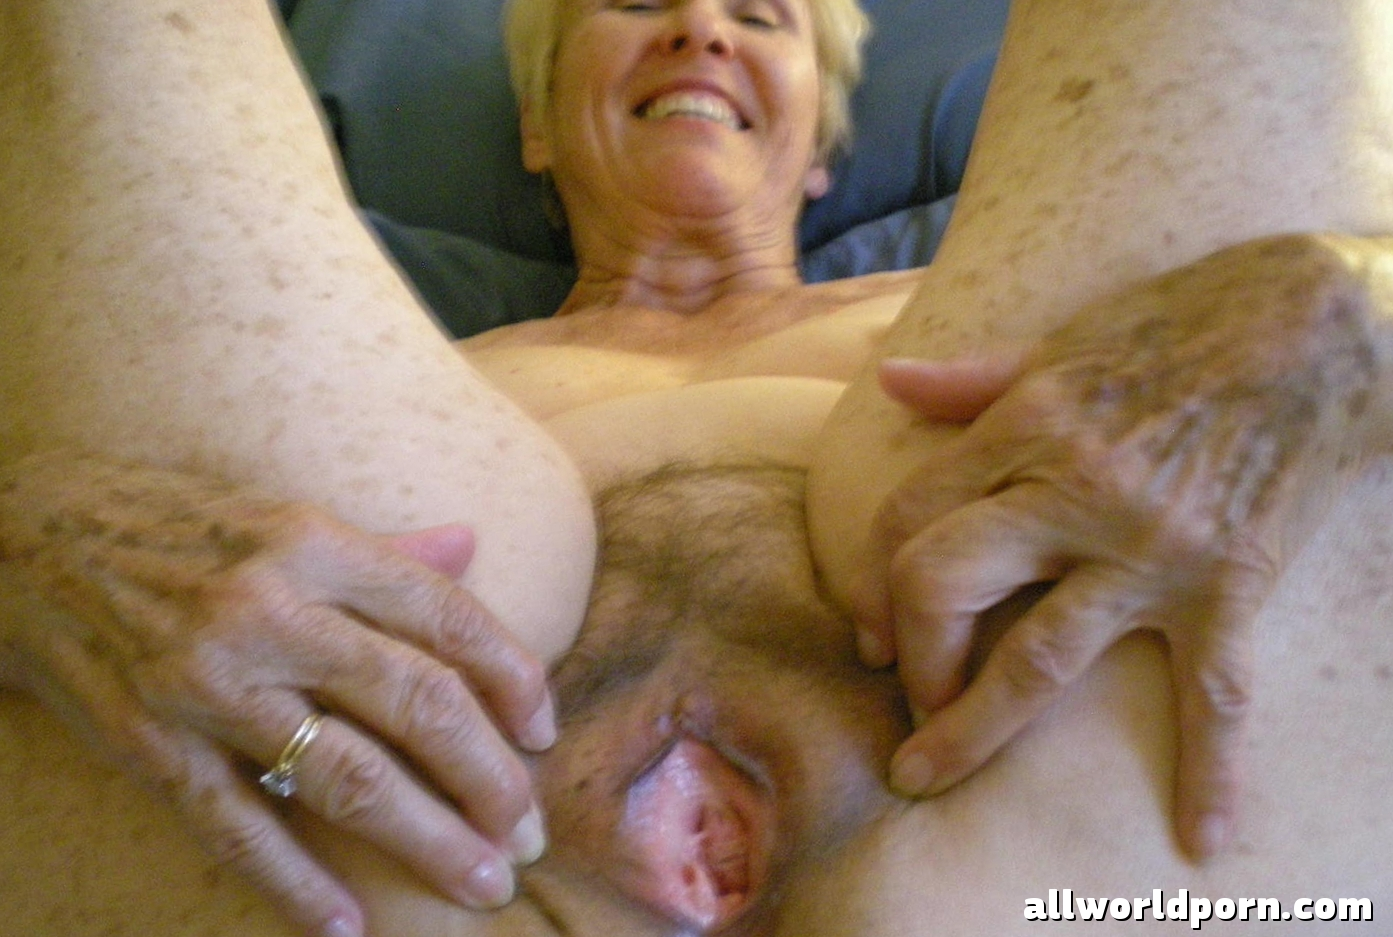 Bare old woman porn nude comic